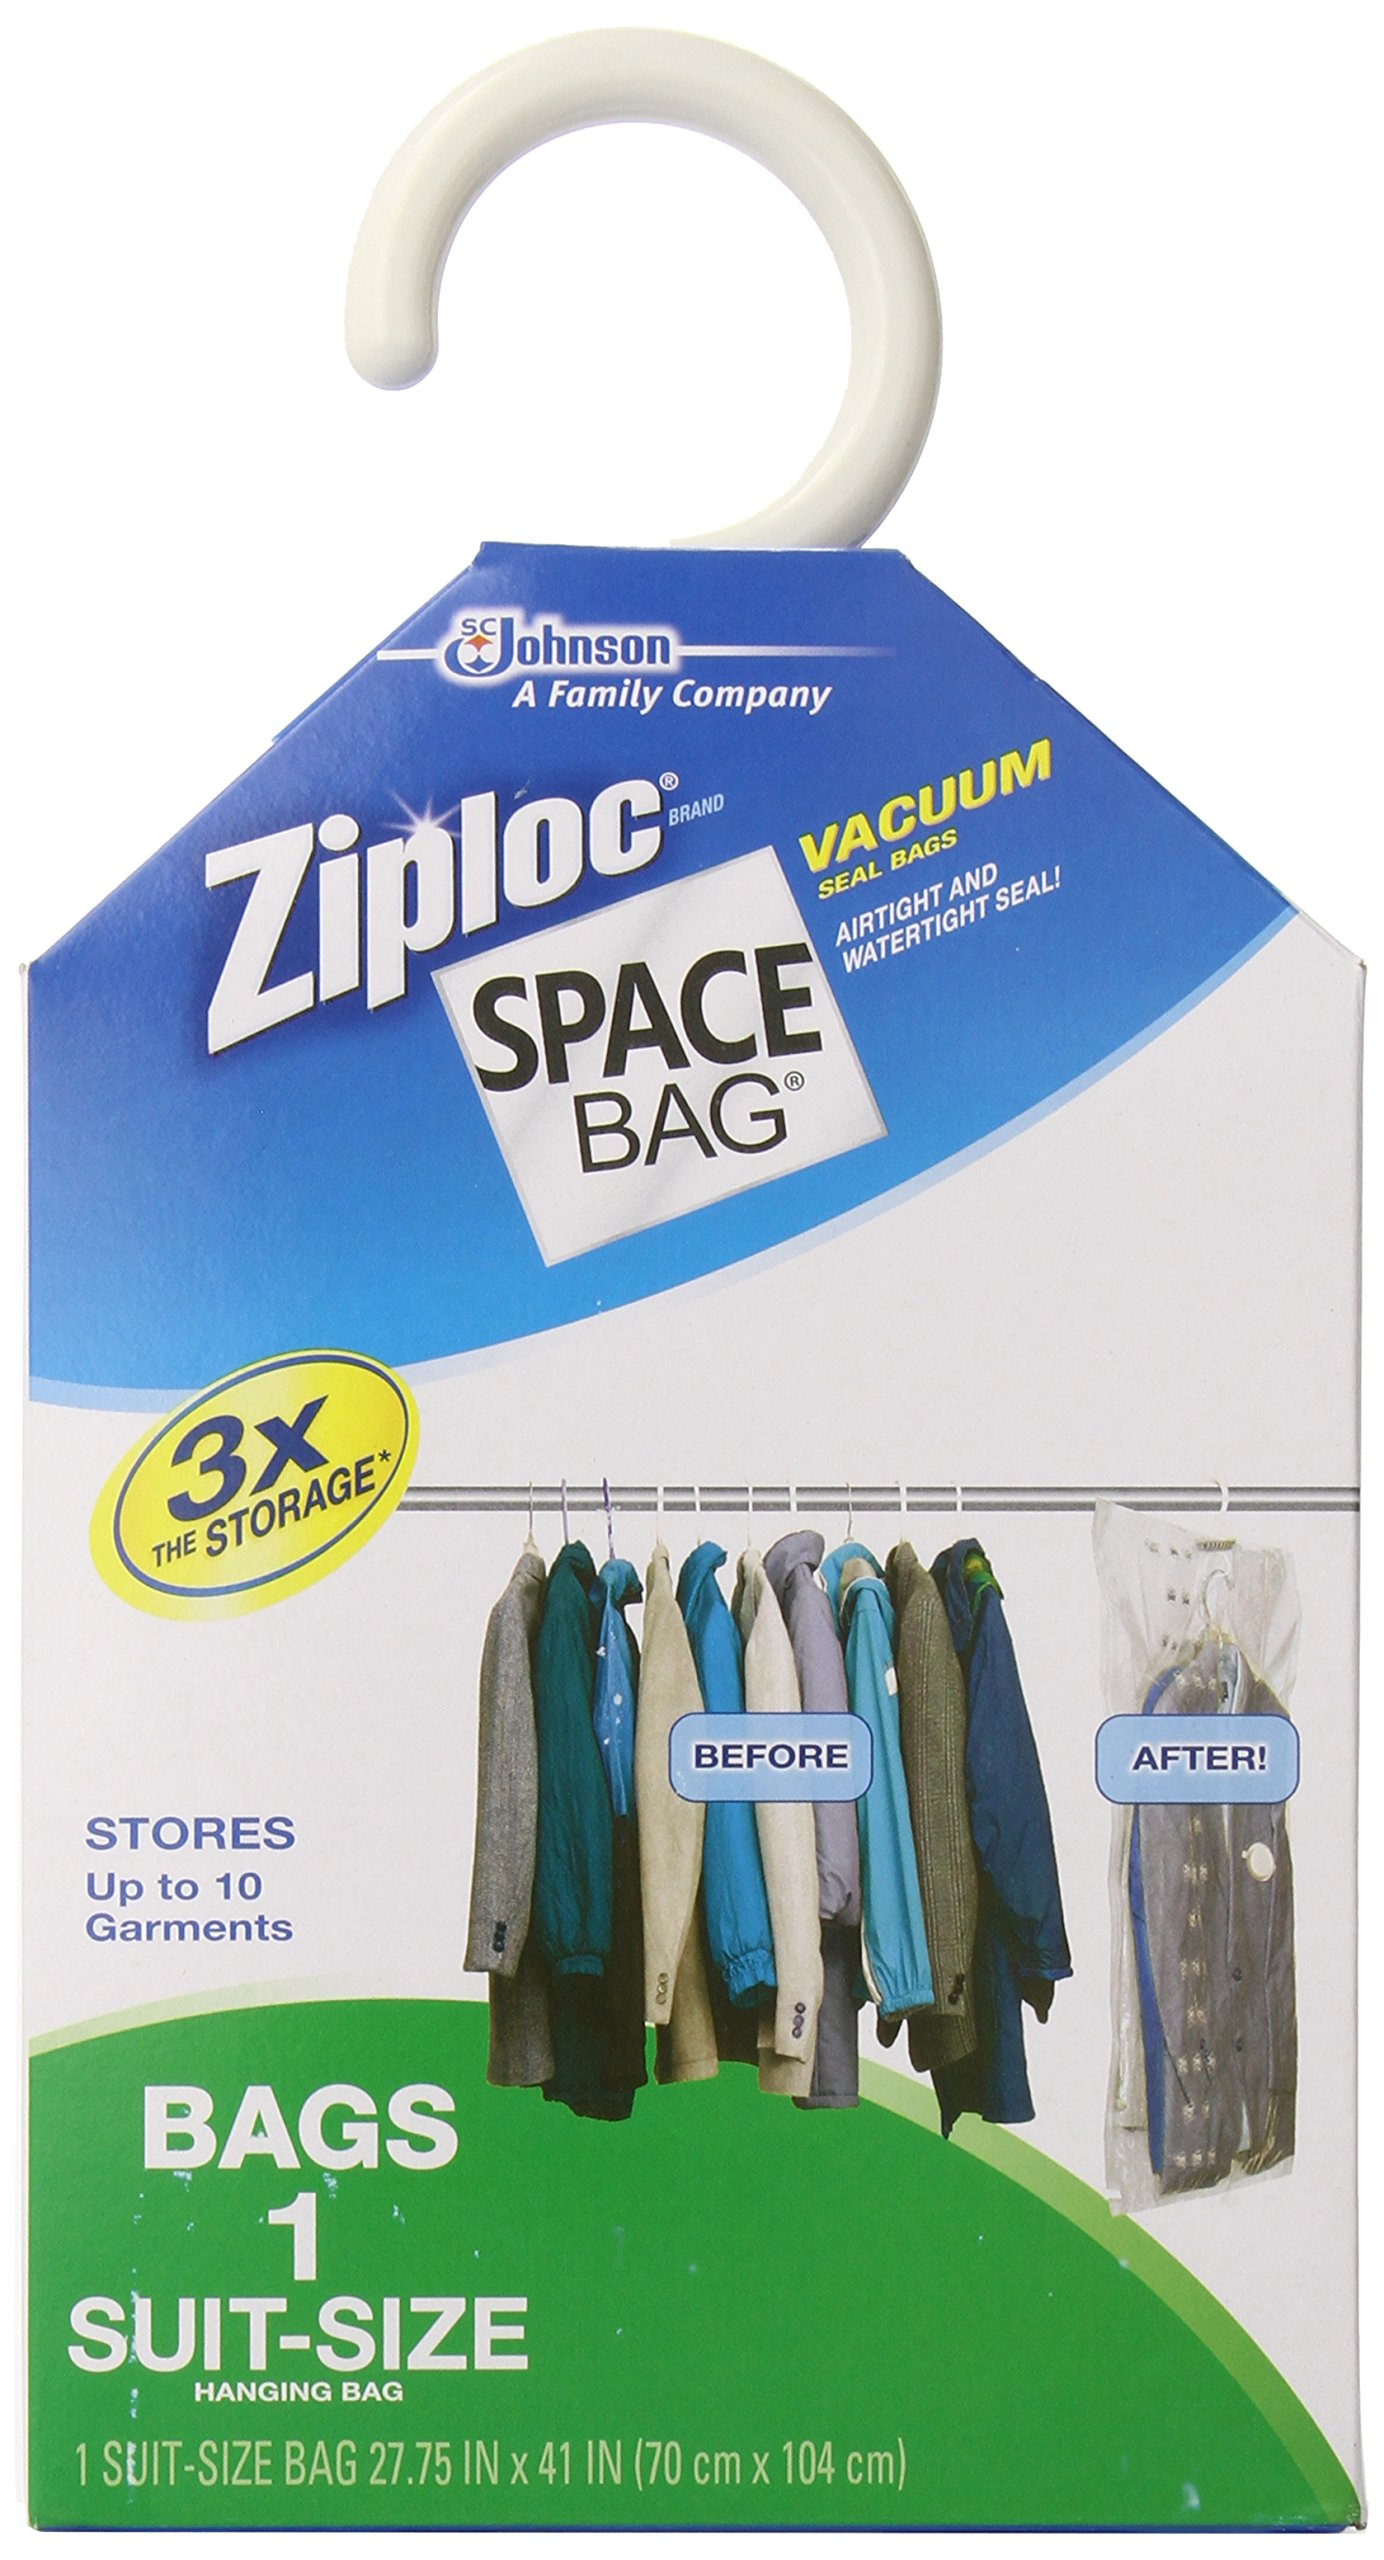 363dc7b920ac Amazon.com  Space Bag  WBR-5700 Vacuum Seal Clear Hanging Storage Bag   Health   Personal Care